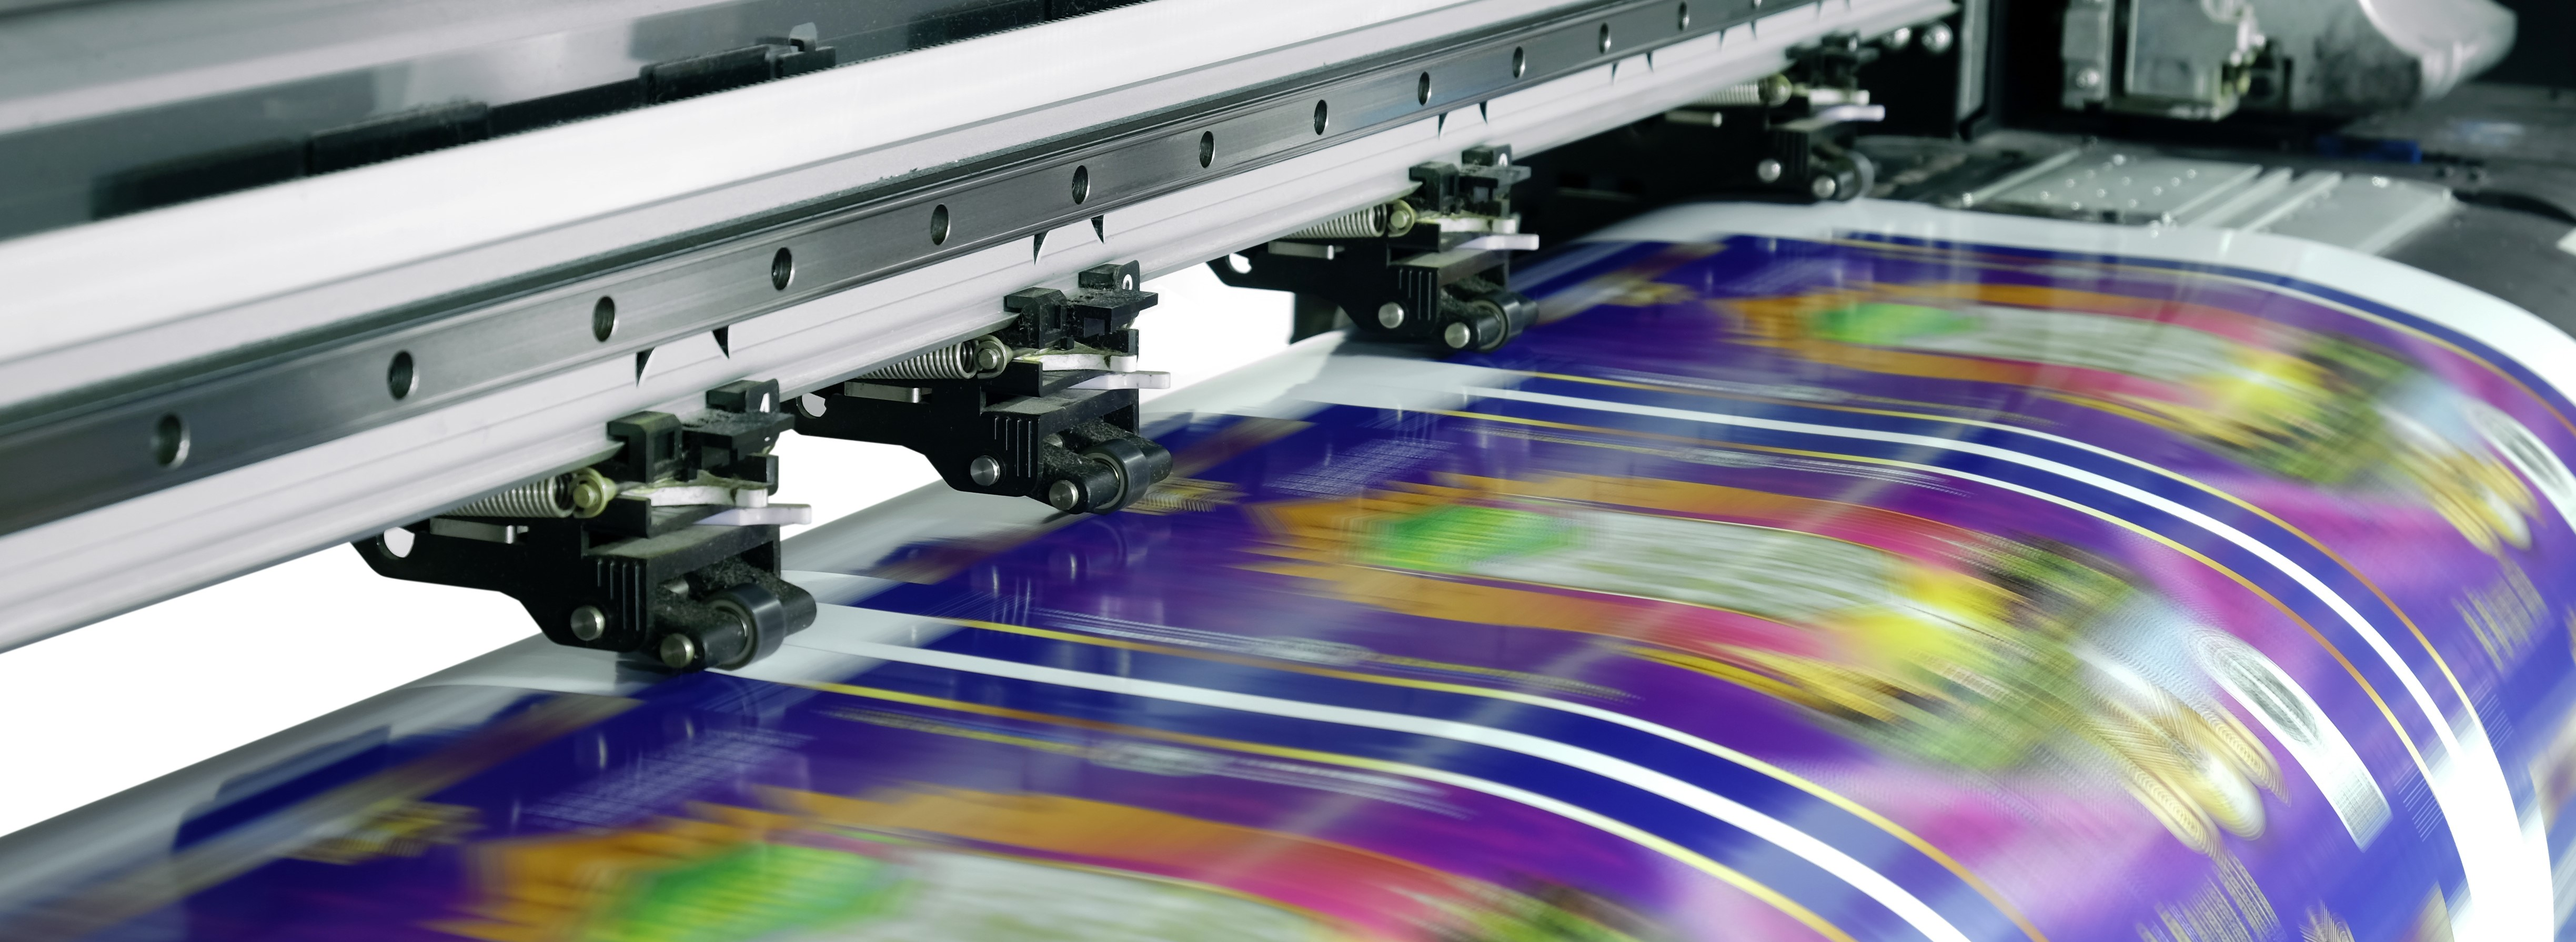 Large Format Printers from LaserCycle USA